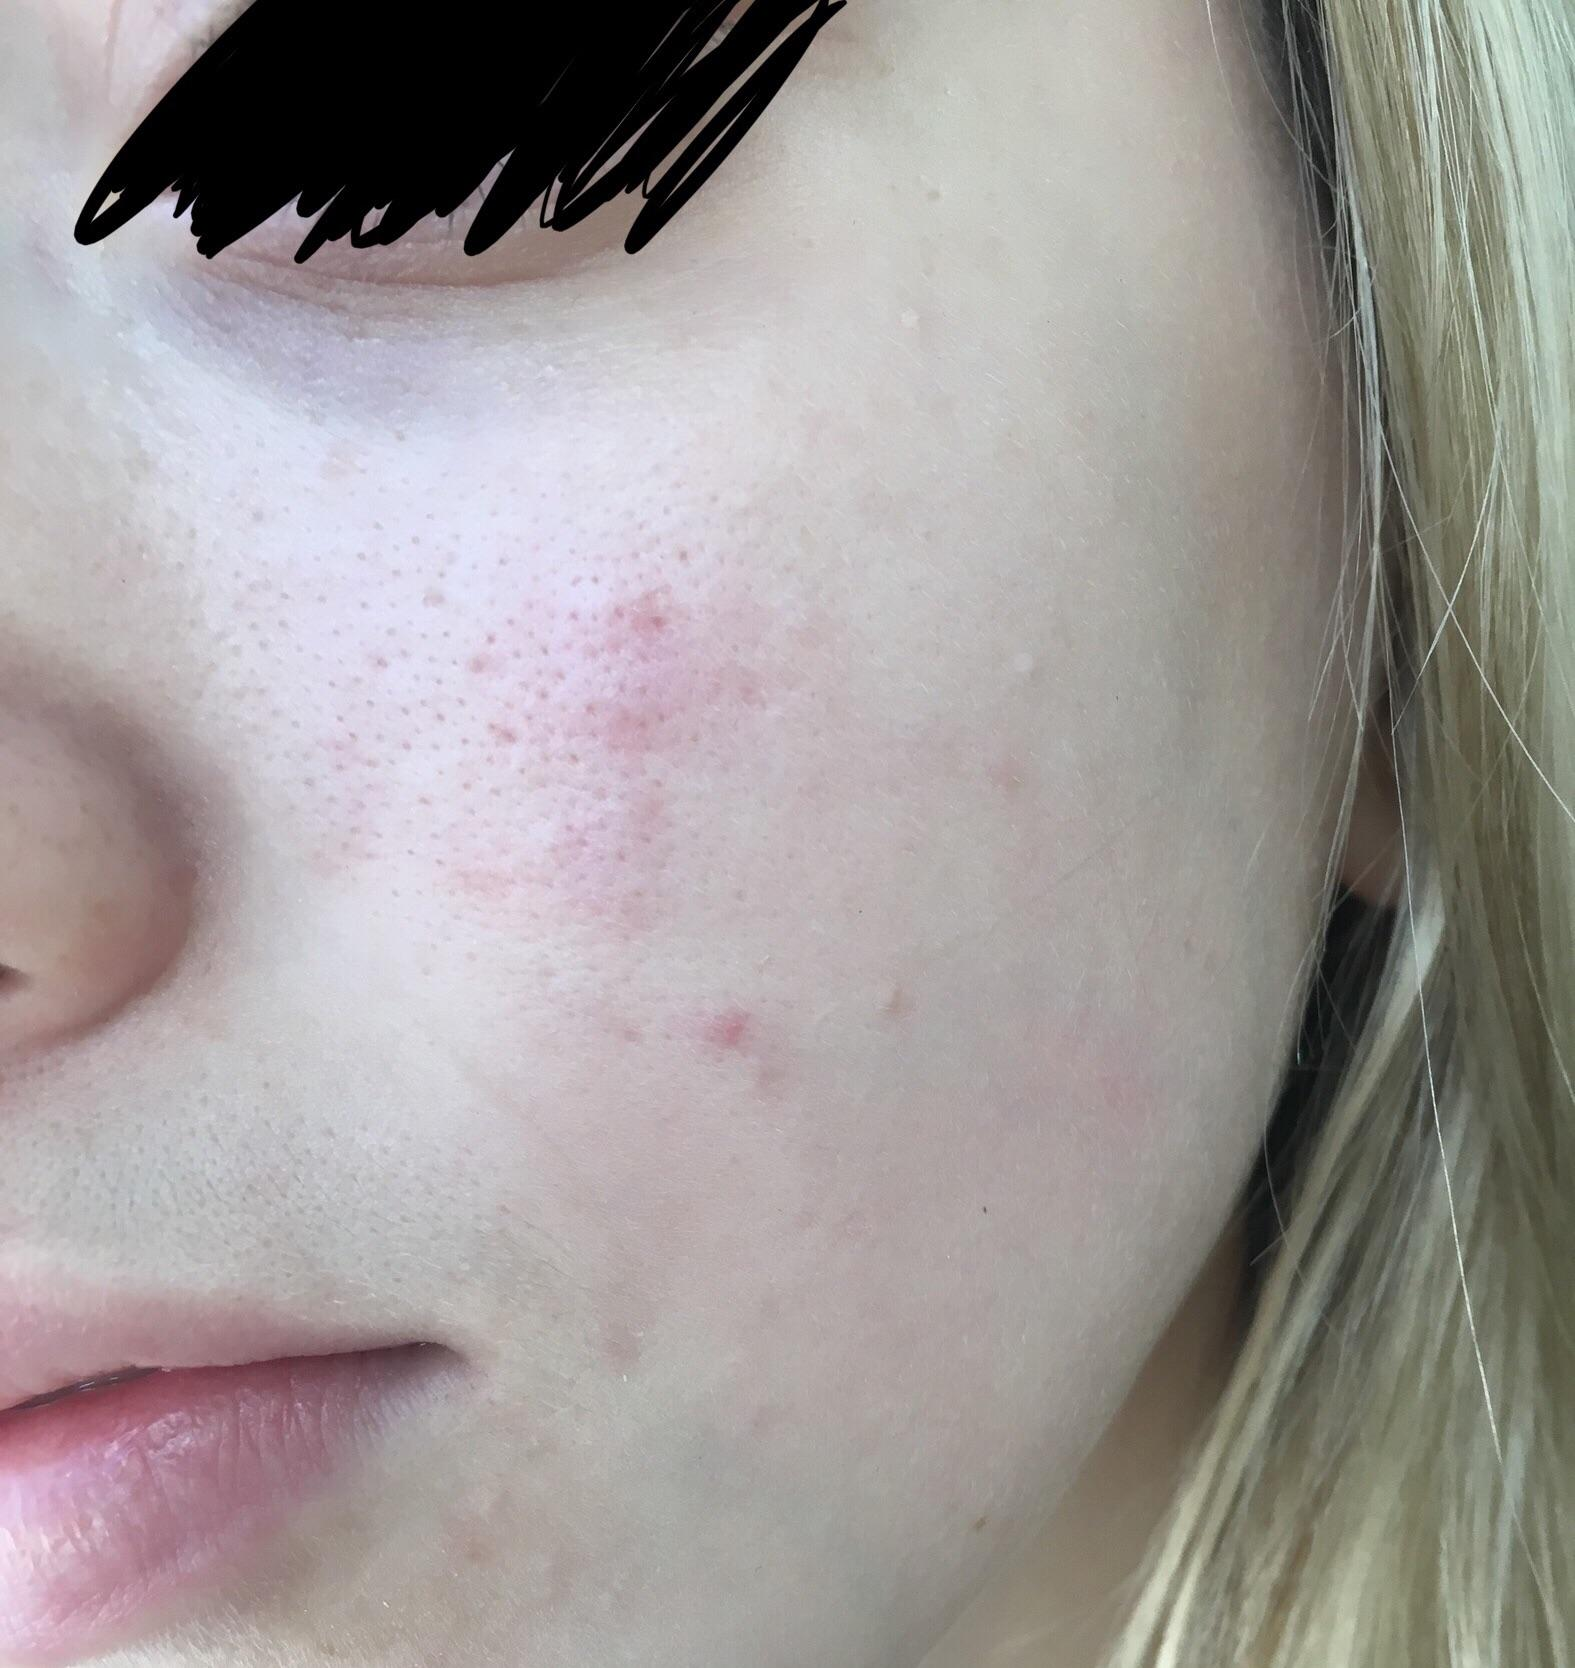 [Routine Help] Large pores clogged pores redness and ...